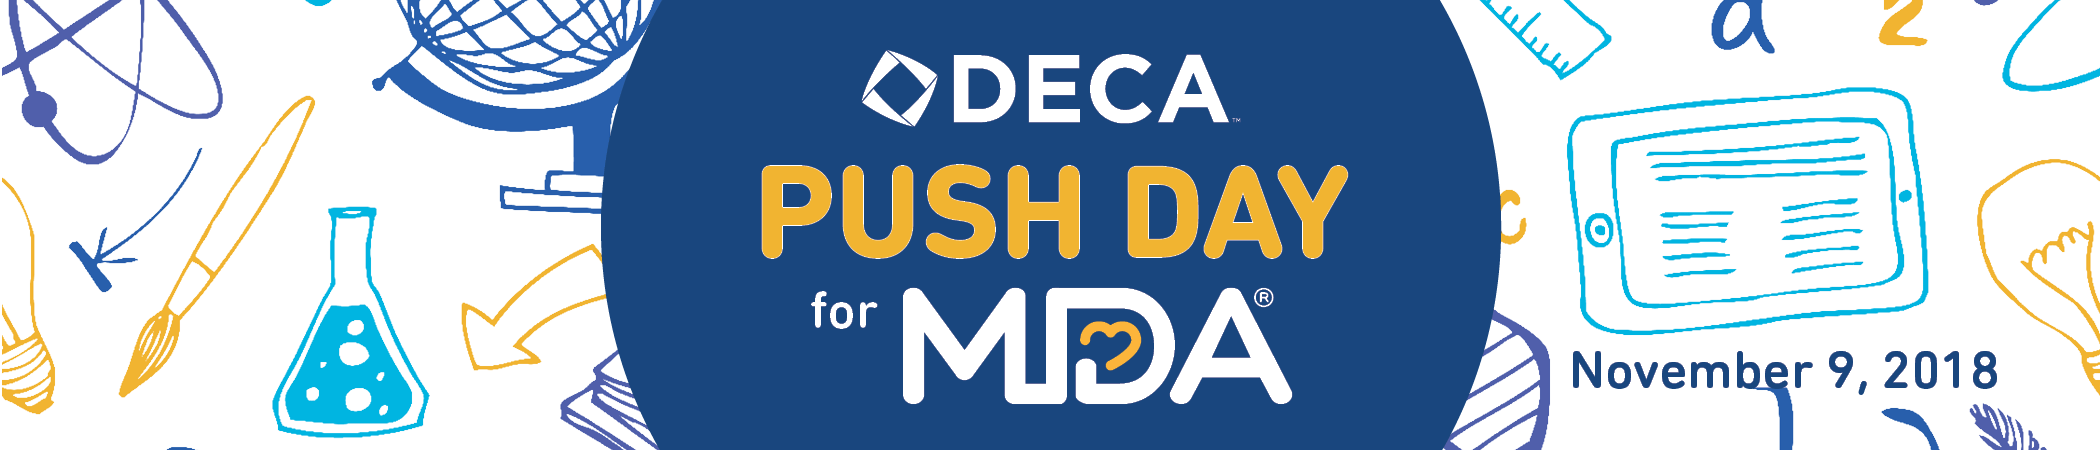 DECA push day condensed header.png